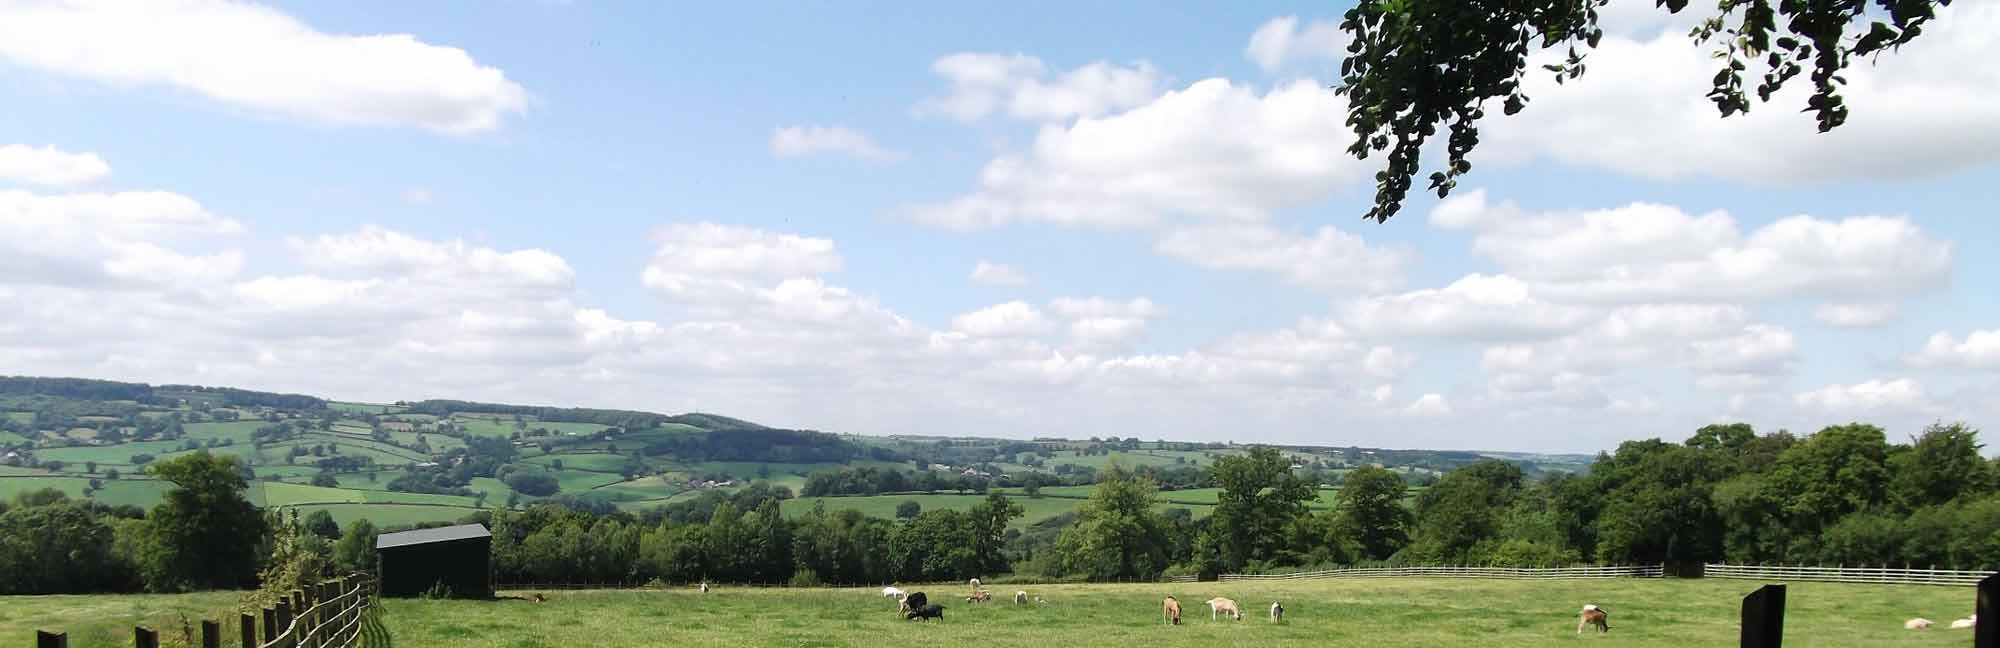 Ferne Animal Sanctuary countryside view